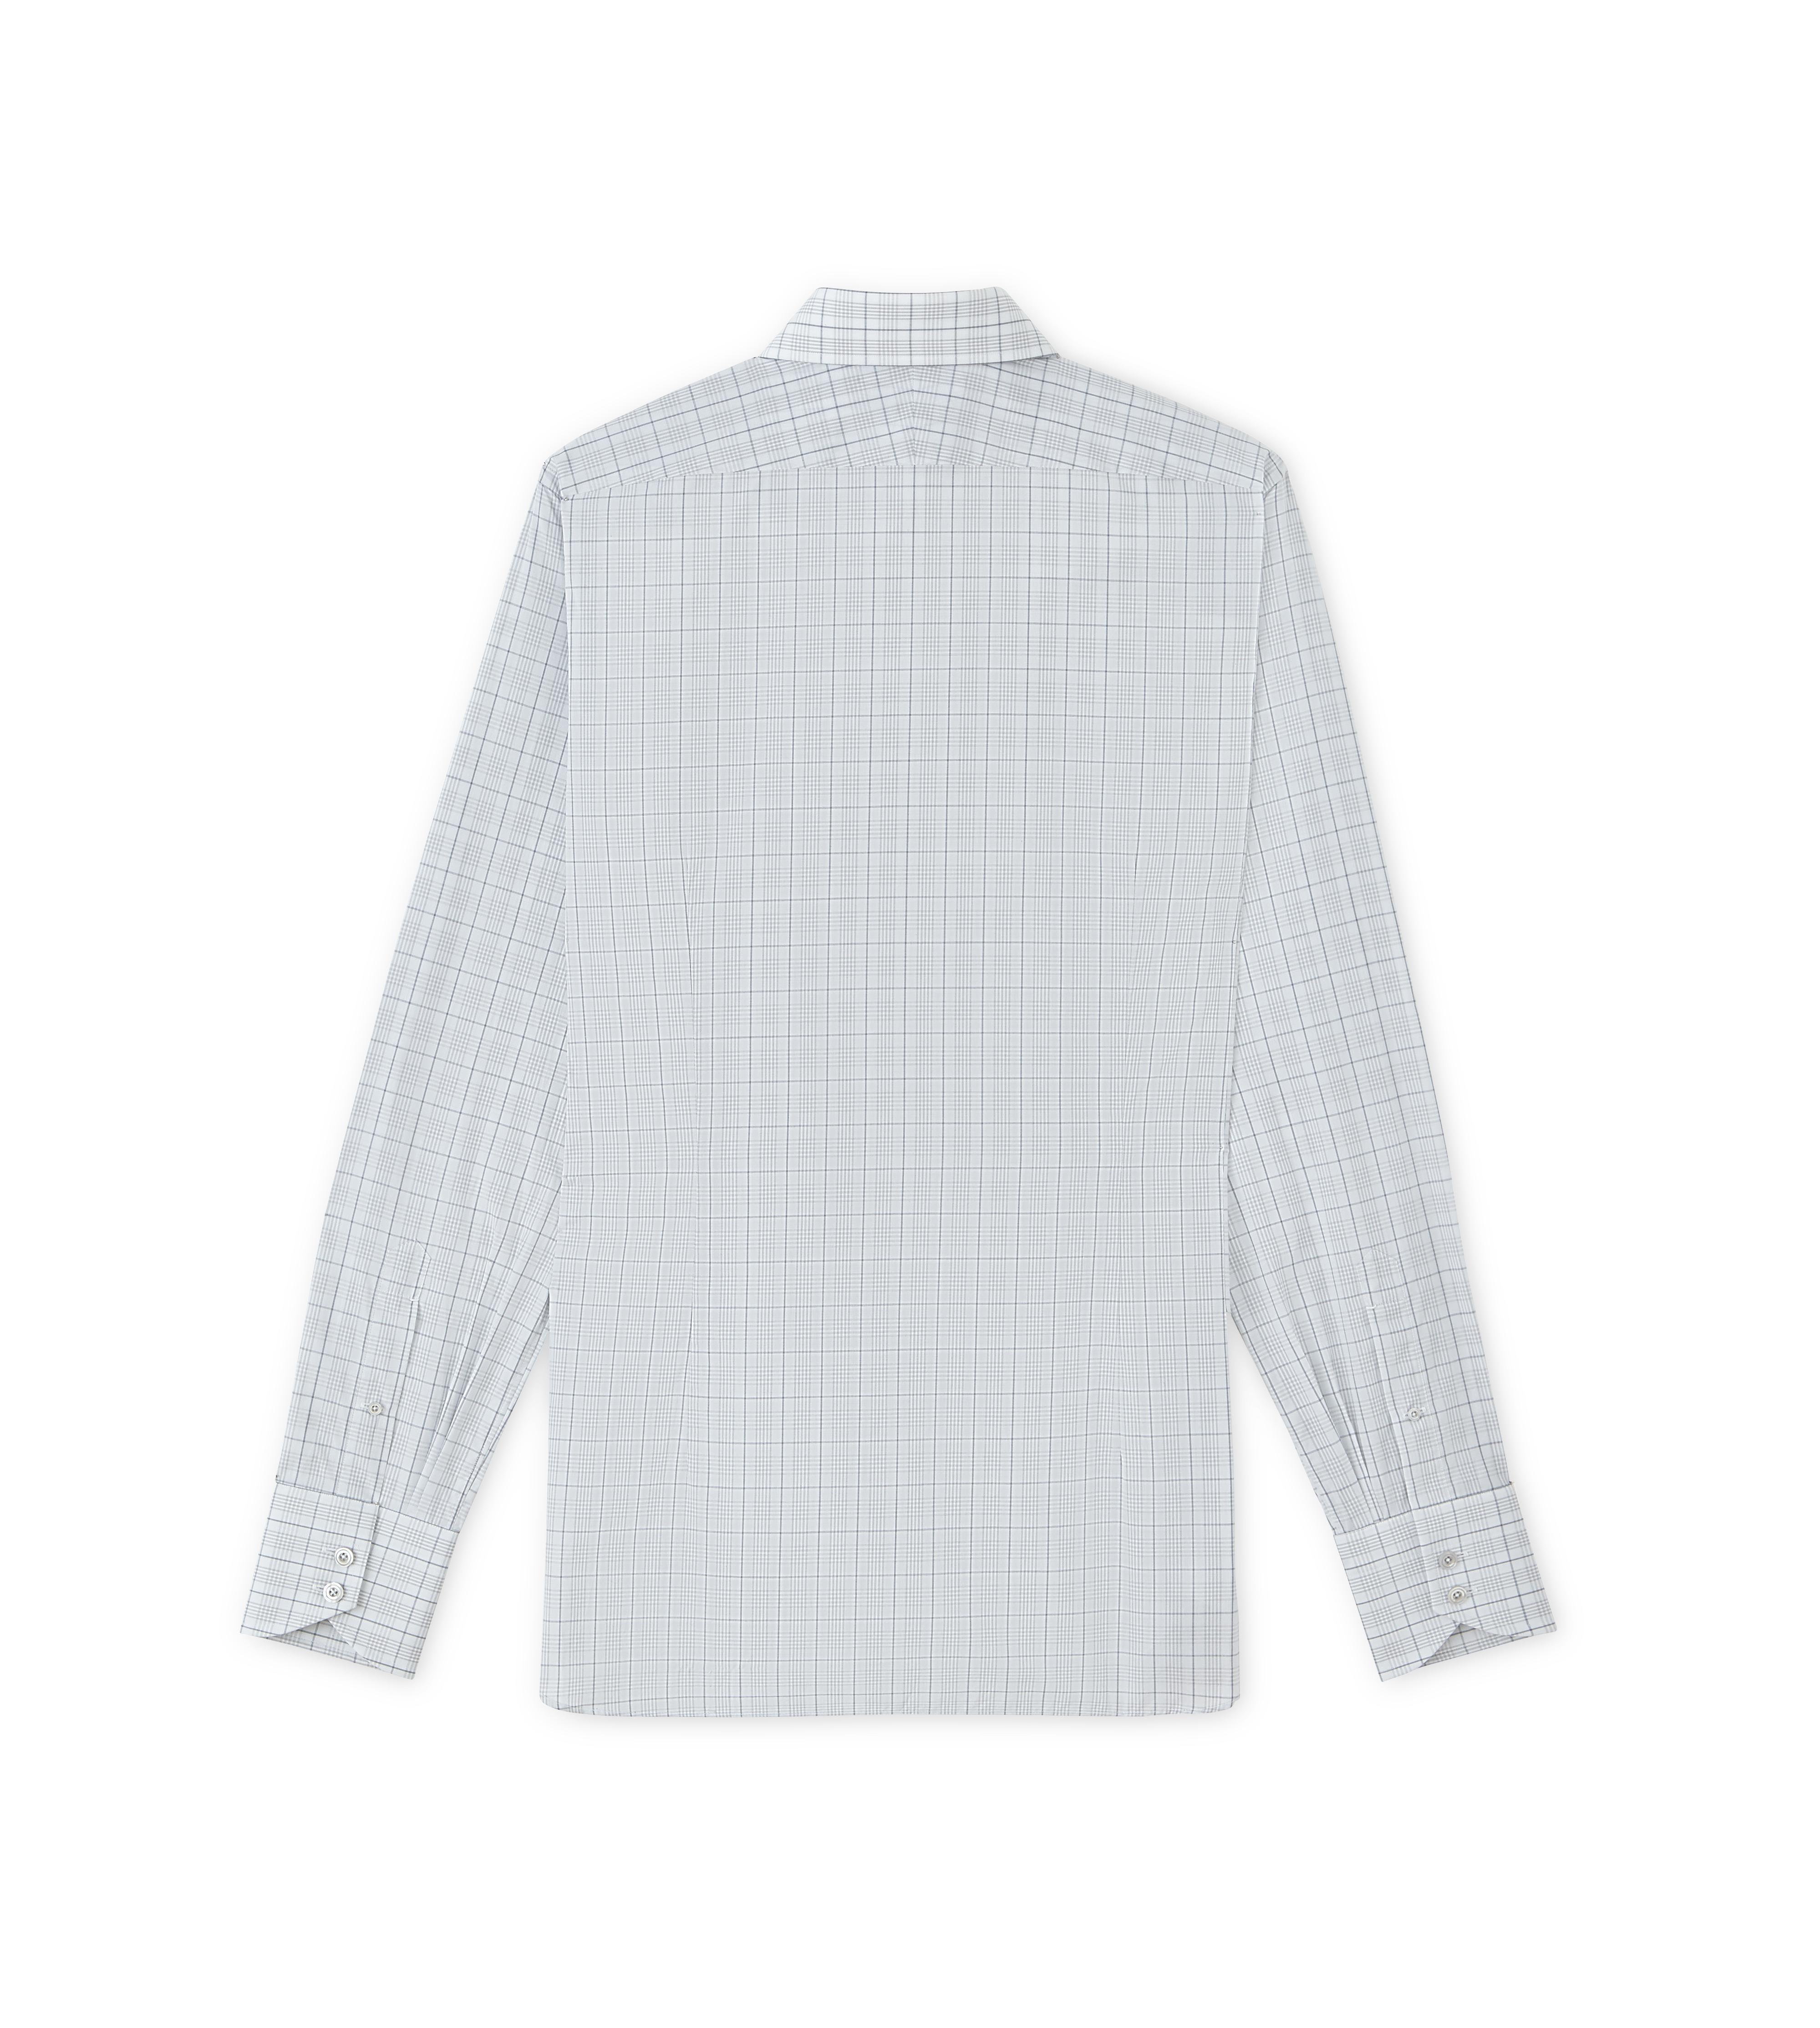 SUBTLE DARK OVERCHECK SPREAD COLLAR DAY SHIRT B thumbnail